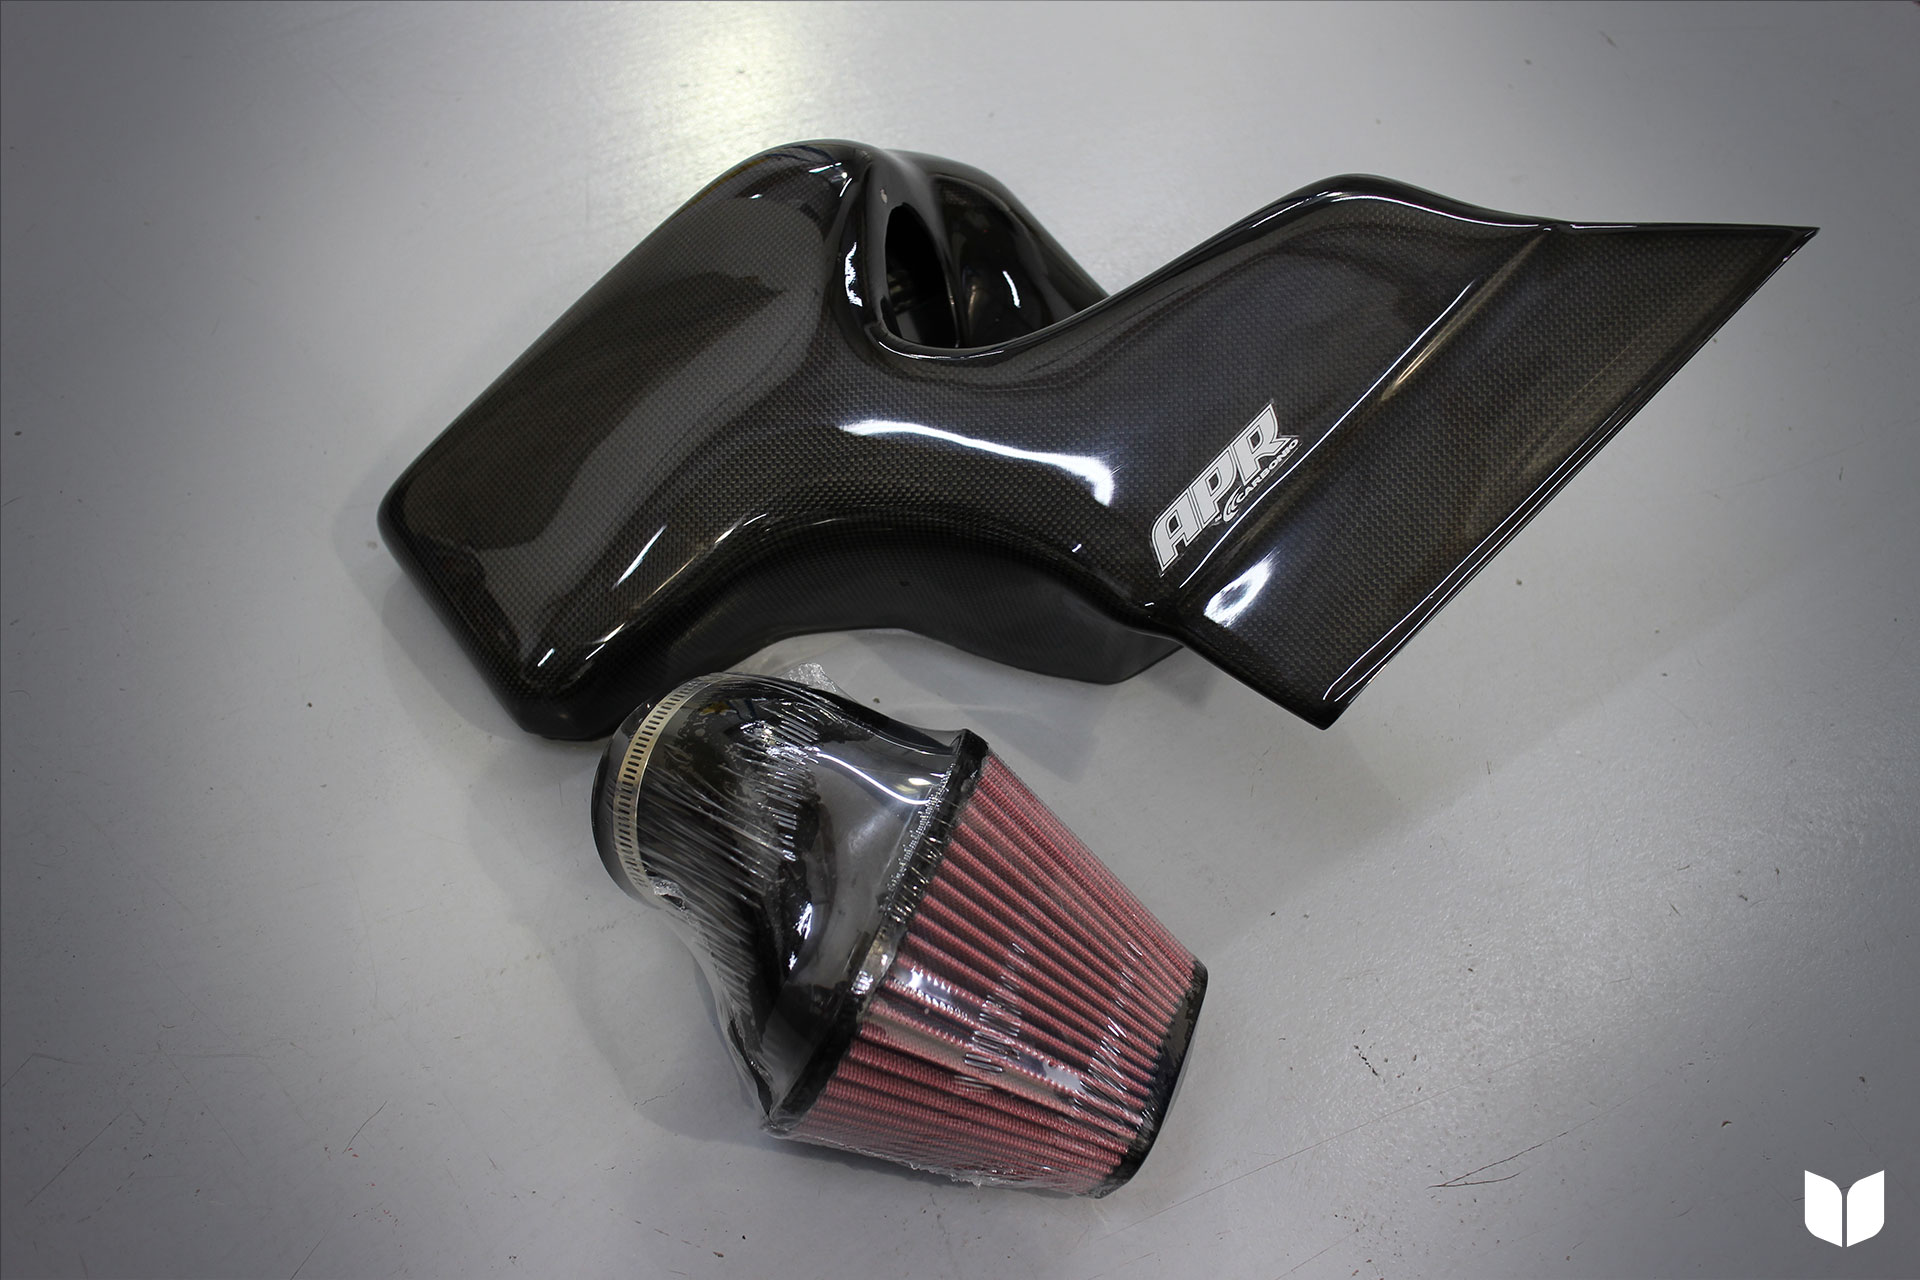 Carbonio Carbon Fiber Cold Air Intake System by APR